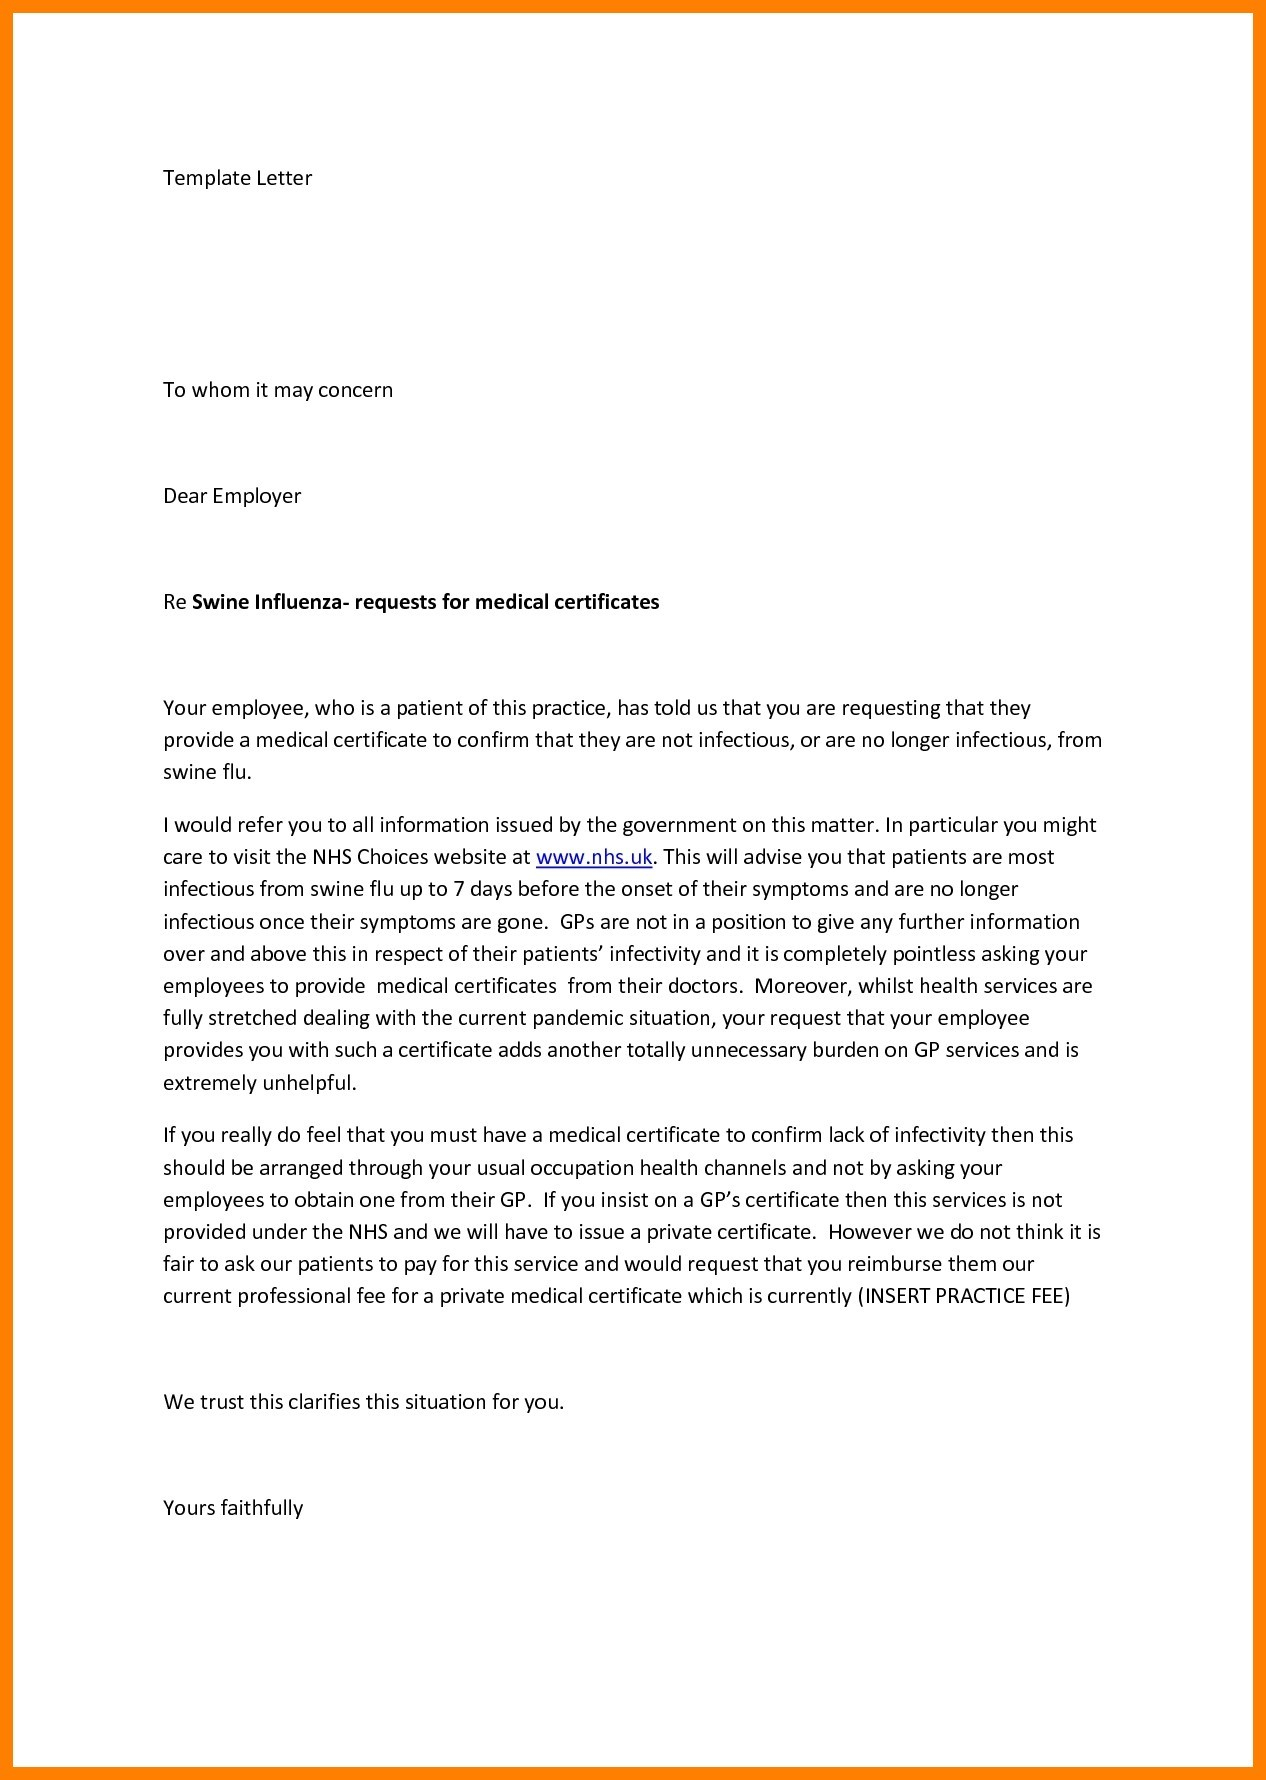 Employment Verification Letter to whom It May Concern Template - Guarantee Certificate format In Word New 4 Employee Confirmation